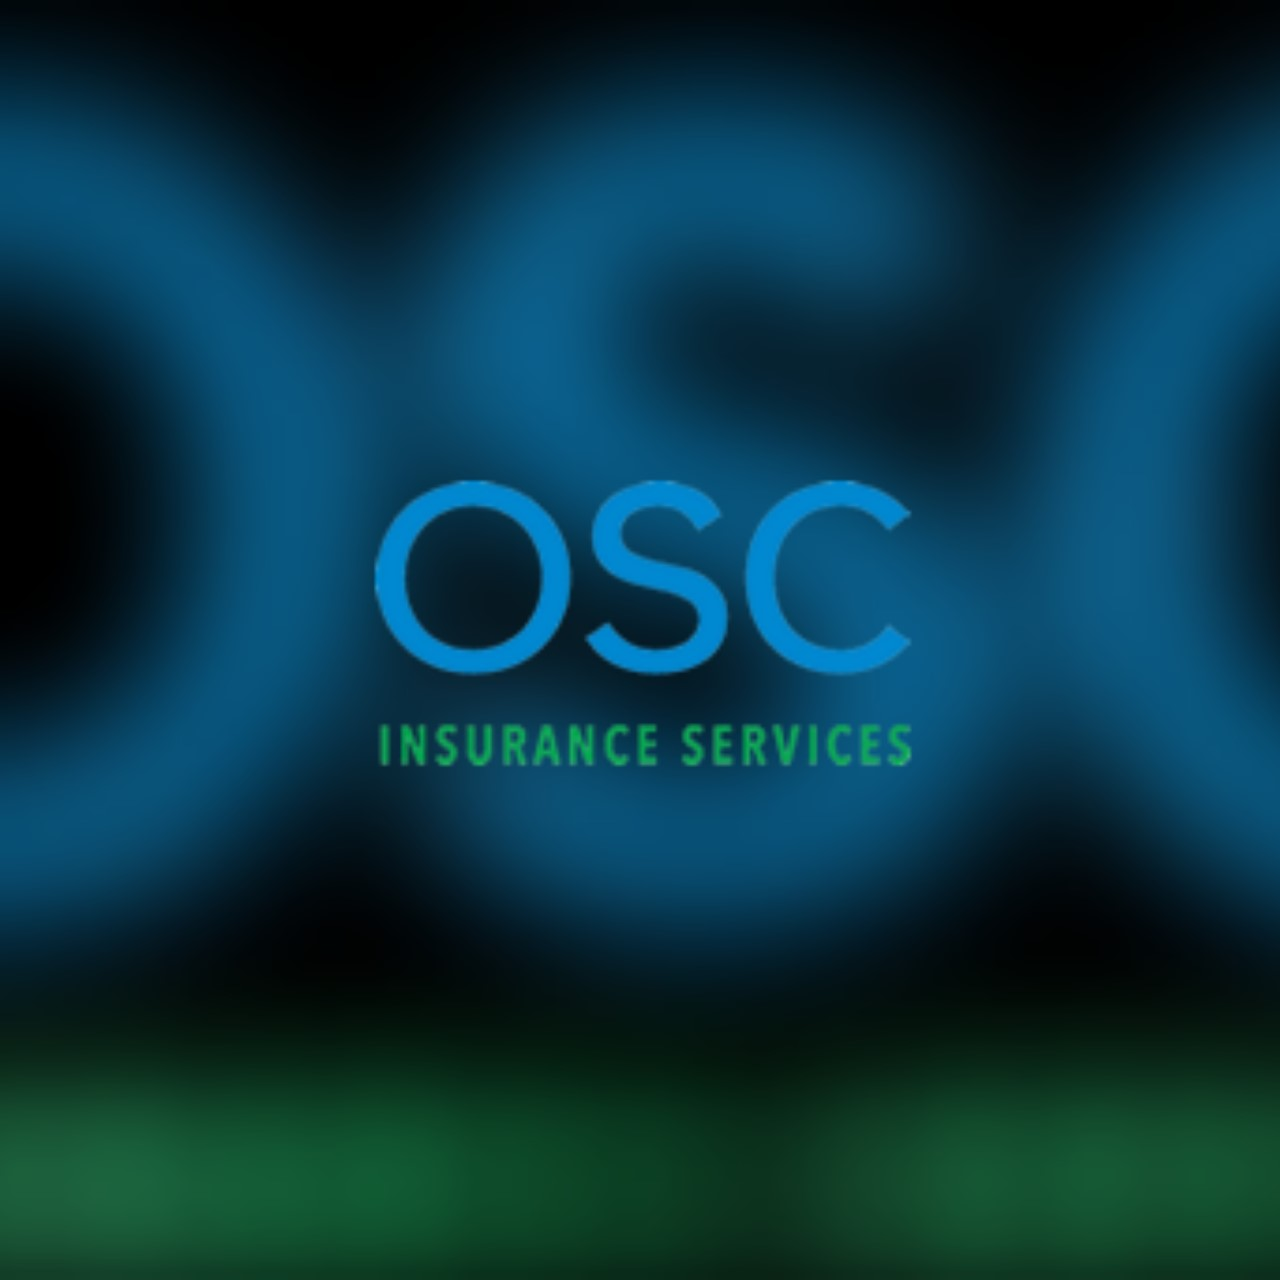 OSC Insurance Services Can Help Alleviate Your Worries. - For those property investors looking to protect and grow their portfolios, OSC offers industry-specific property and liability insurance tailored to your unique needs. Coupled with our vast experience in this investor space and relationships with top-rated insurance carriers, we provide comprehensive and competitive coverage insurance solutions in a timely manner. From REITs and financial institutions to property management companies, landlords and investment groups, OSC has you covered.Don Curtis SVP, Business Development OSC, a Breckenridge CompanyDirect: 619.994.6669 Office: 760.342.3525 www.oscis.com 245 Town Park Drive, suite 200 Kensnesaw, GA 30144